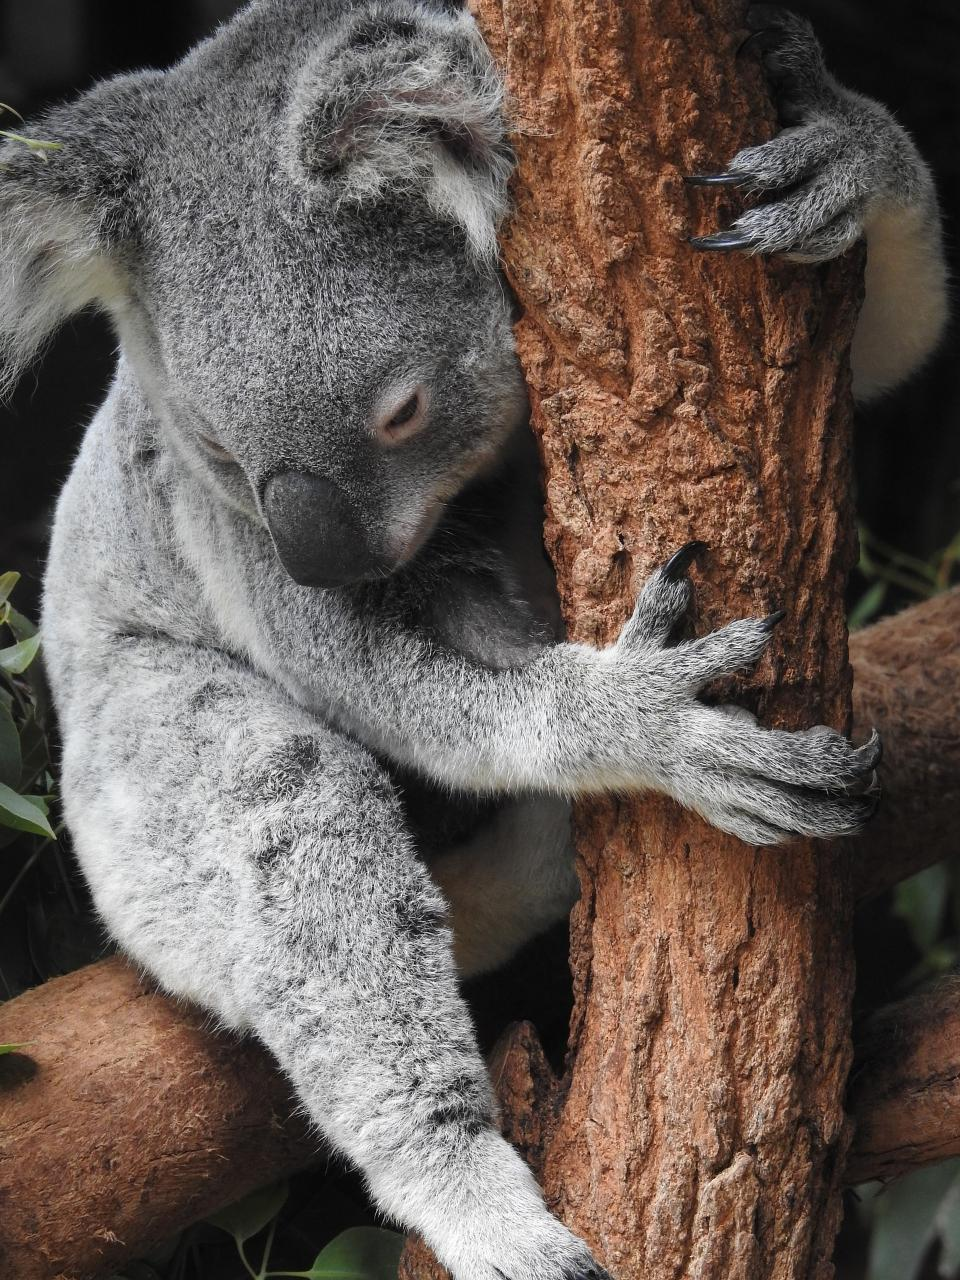 Free download high resolution image - free image free photo free stock image public domain picture  A sleeping koala